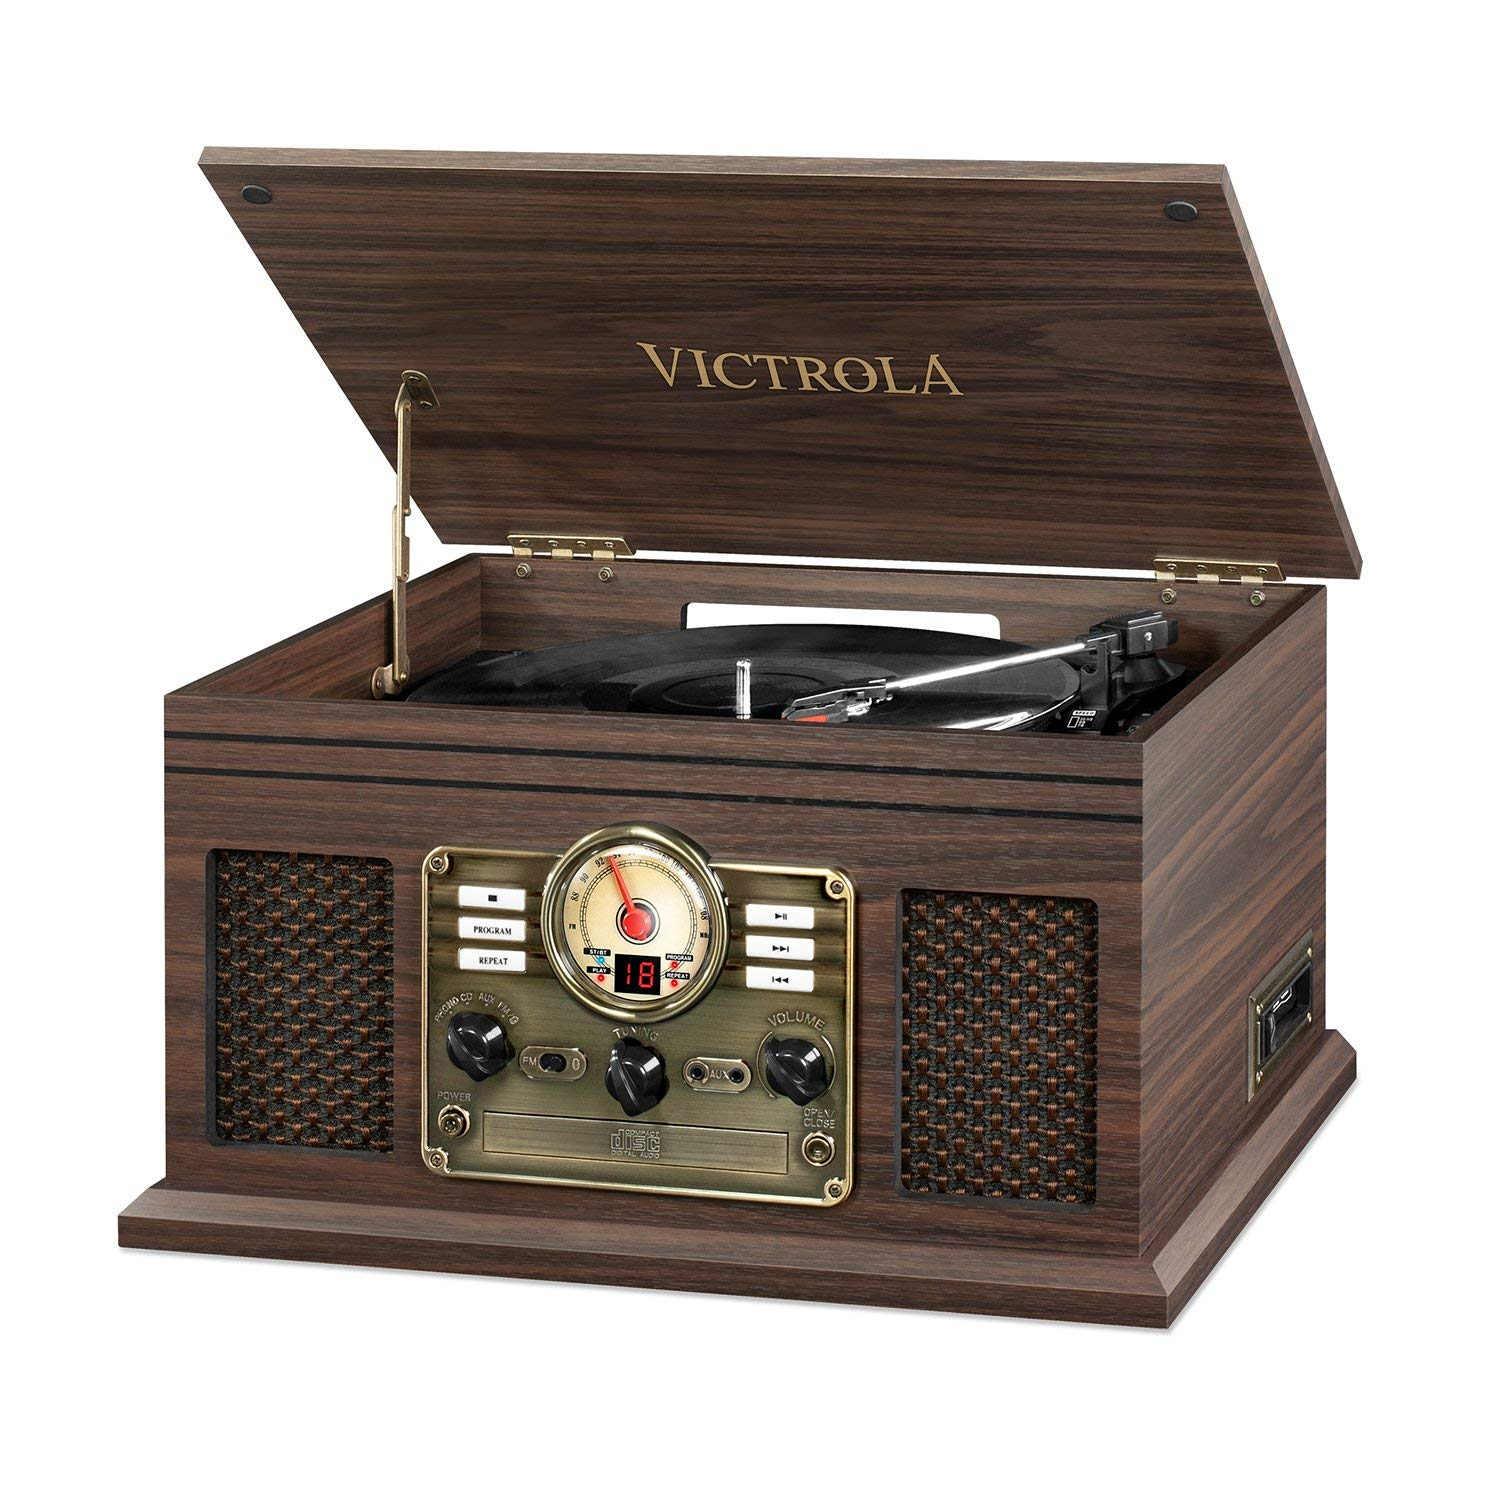 Victrola Nostalgic Classic Wood 6-in-1 Bluetooth Turntable Entertainment Center, Espresso  (Certified Refurbished)